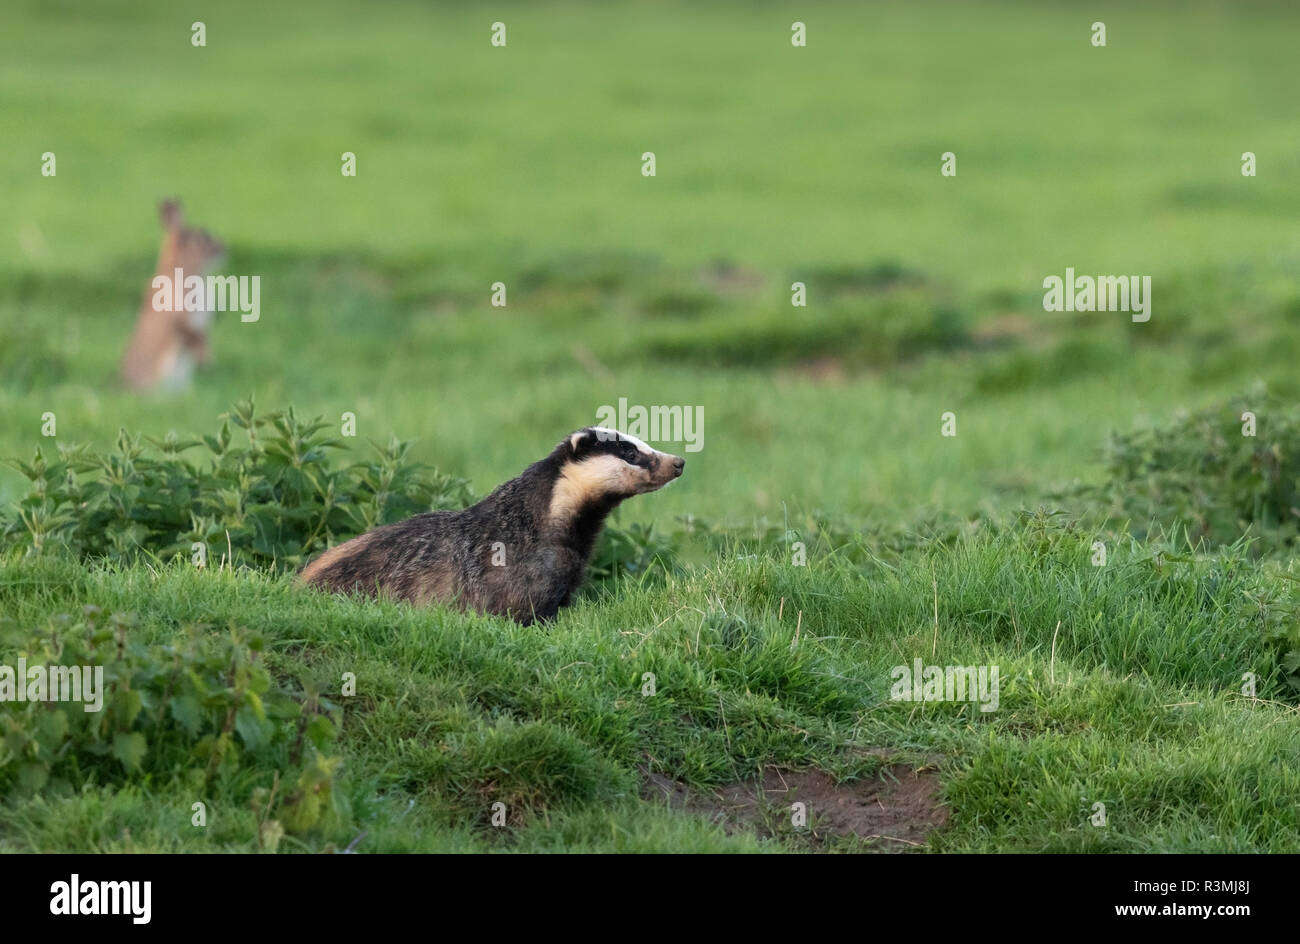 Badger (Meles meles) standing in a meadow - Stock Image